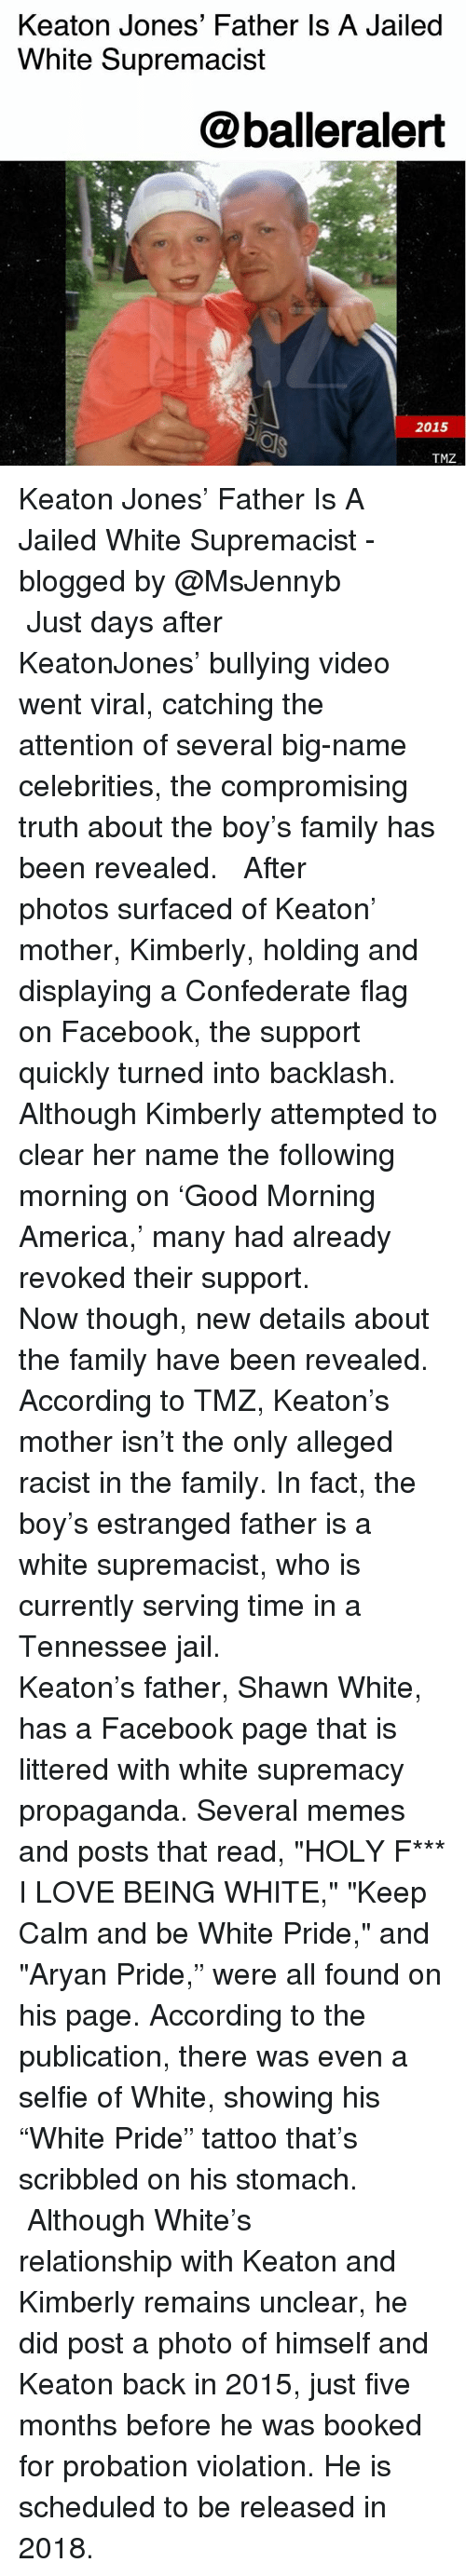 """keep calm and: Keaton Jones' Father Is A Jailed  White Supremacist  @balleralert  2015  TMZ Keaton Jones' Father Is A Jailed White Supremacist - blogged by @MsJennyb ⠀⠀⠀⠀⠀⠀⠀ ⠀⠀⠀⠀⠀⠀⠀ Just days after KeatonJones' bullying video went viral, catching the attention of several big-name celebrities, the compromising truth about the boy's family has been revealed. ⠀⠀⠀⠀⠀⠀⠀ ⠀⠀⠀⠀⠀⠀⠀ After photos surfaced of Keaton' mother, Kimberly, holding and displaying a Confederate flag on Facebook, the support quickly turned into backlash. Although Kimberly attempted to clear her name the following morning on 'Good Morning America,' many had already revoked their support. ⠀⠀⠀⠀⠀⠀⠀ ⠀⠀⠀⠀⠀⠀⠀ Now though, new details about the family have been revealed. According to TMZ, Keaton's mother isn't the only alleged racist in the family. In fact, the boy's estranged father is a white supremacist, who is currently serving time in a Tennessee jail. ⠀⠀⠀⠀⠀⠀⠀ ⠀⠀⠀⠀⠀⠀⠀ Keaton's father, Shawn White, has a Facebook page that is littered with white supremacy propaganda. Several memes and posts that read, """"HOLY F*** I LOVE BEING WHITE,"""" """"Keep Calm and be White Pride,"""" and """"Aryan Pride,"""" were all found on his page. According to the publication, there was even a selfie of White, showing his """"White Pride"""" tattoo that's scribbled on his stomach. ⠀⠀⠀⠀⠀⠀⠀ ⠀⠀⠀⠀⠀⠀⠀ Although White's relationship with Keaton and Kimberly remains unclear, he did post a photo of himself and Keaton back in 2015, just five months before he was booked for probation violation. He is scheduled to be released in 2018."""